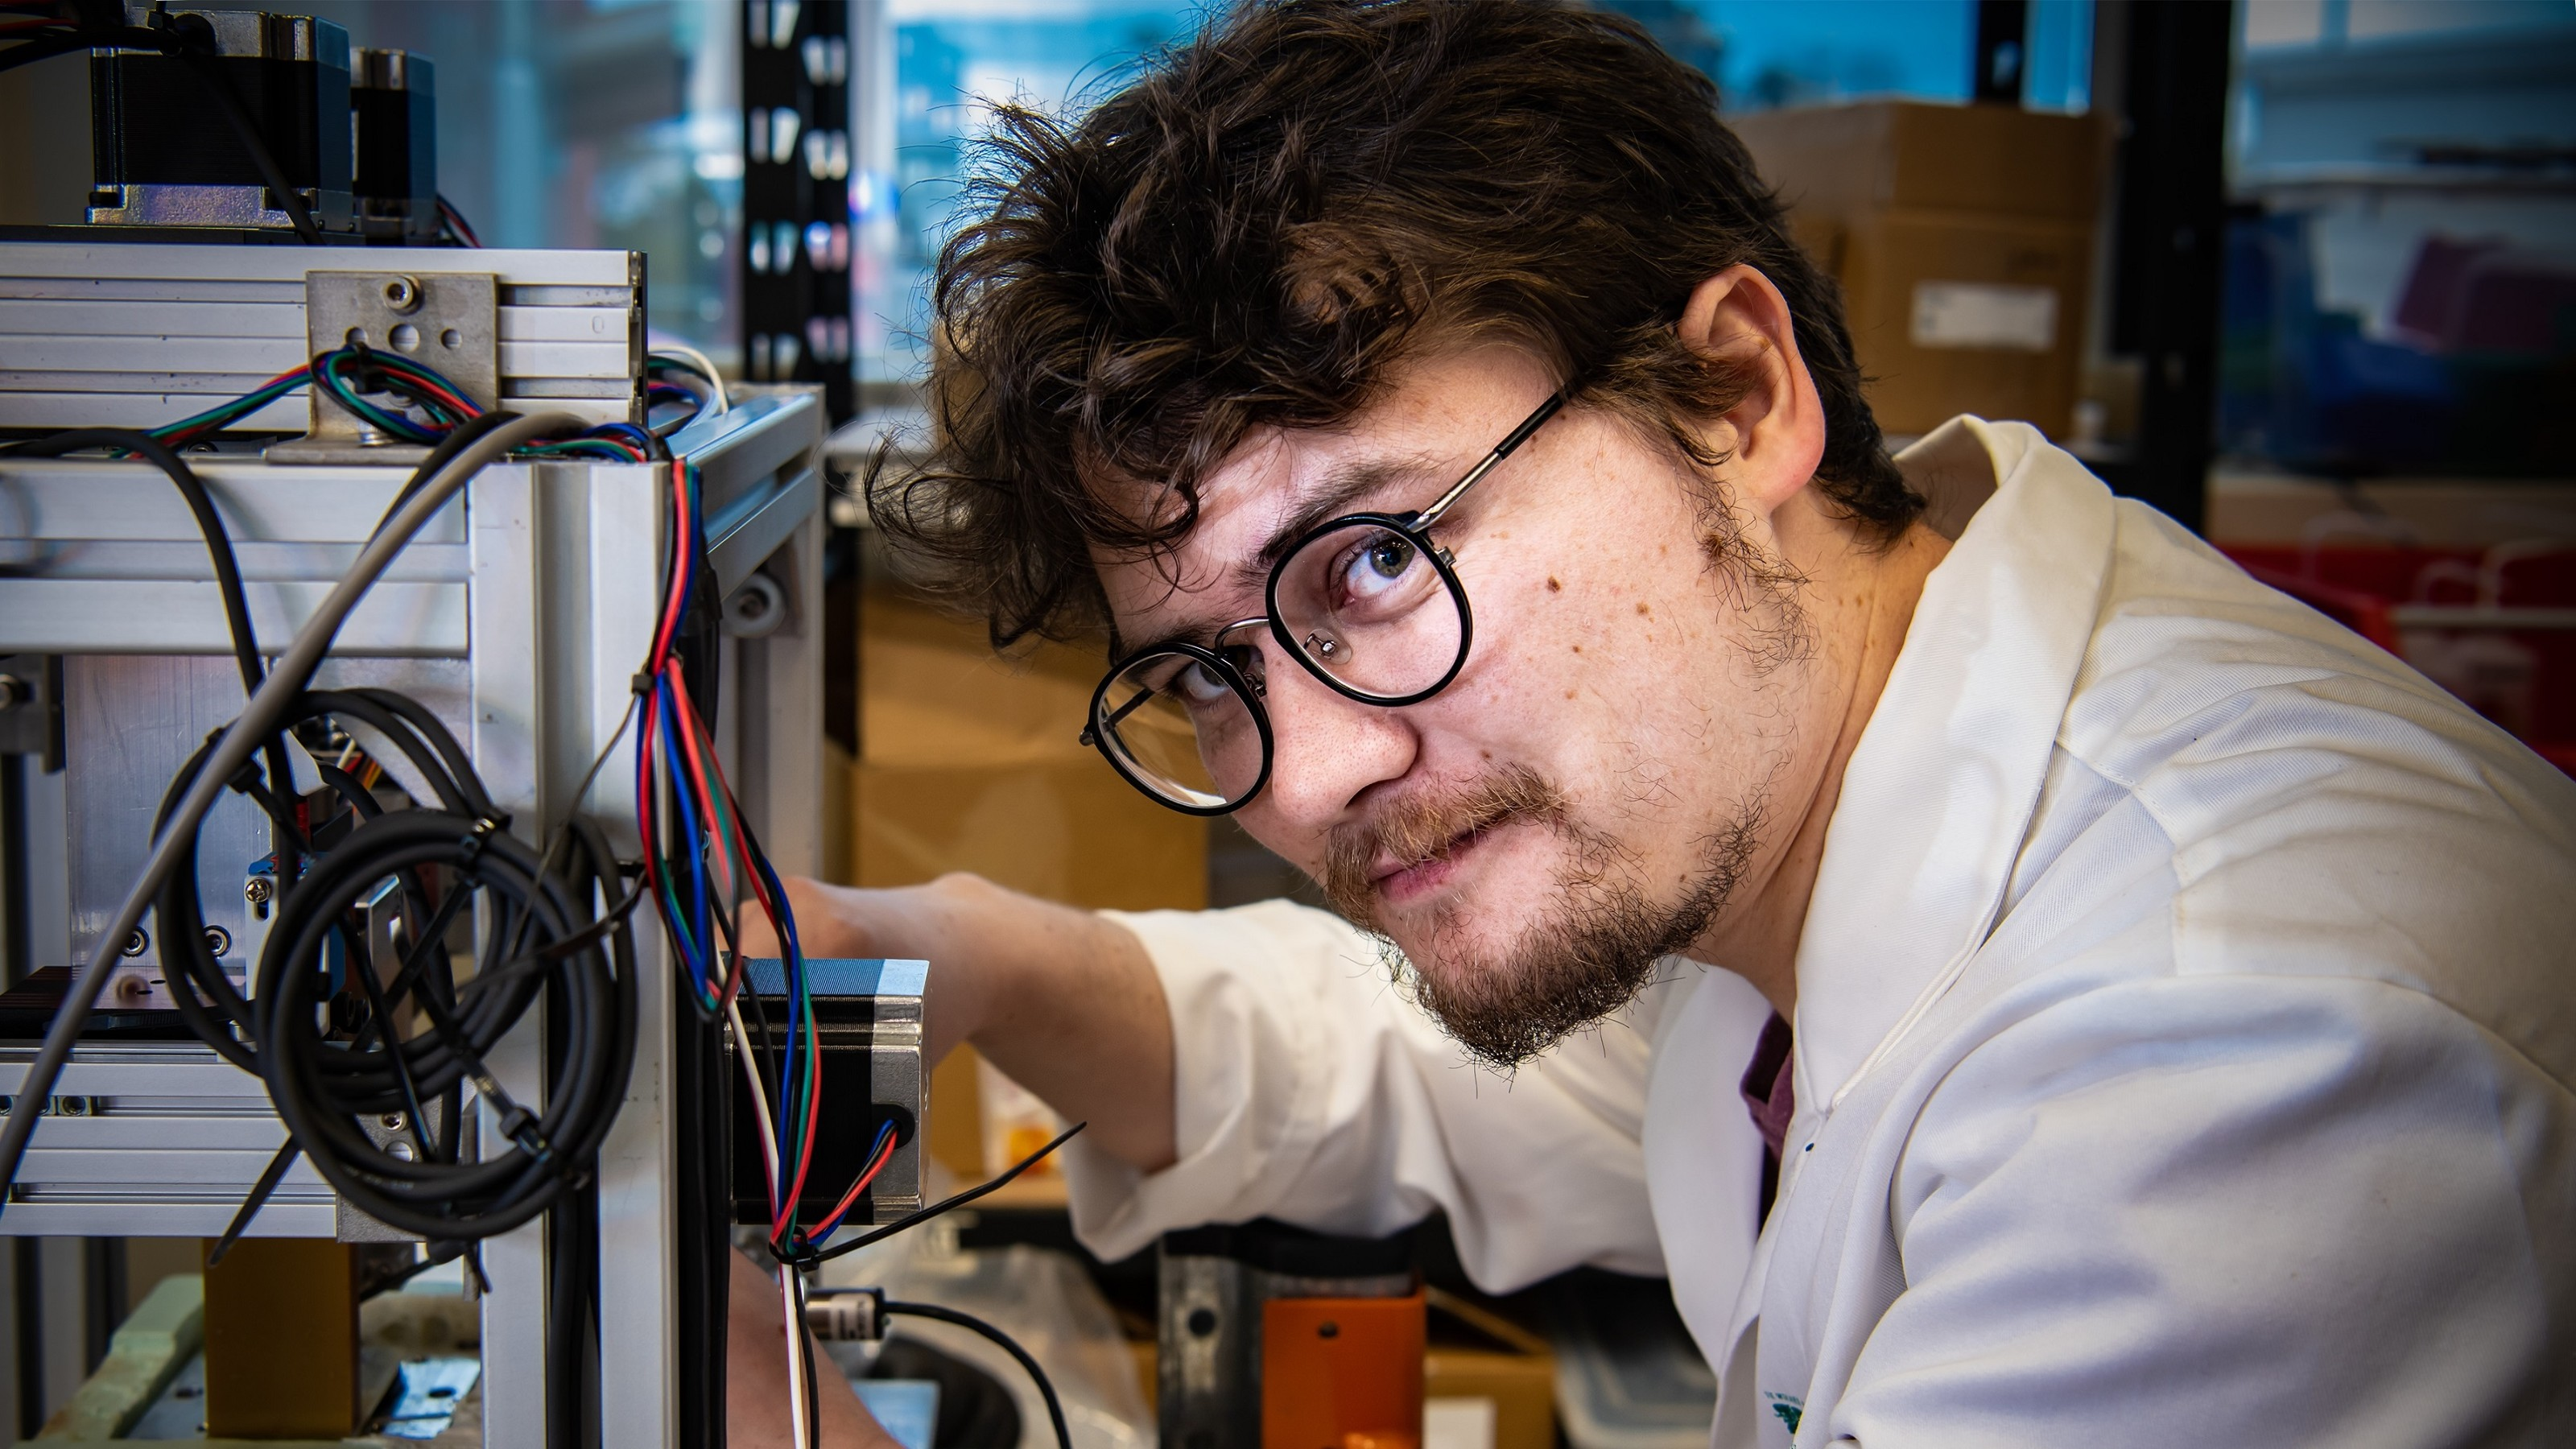 Male student with round glasses in labcoat, at Robinson Research Institute.